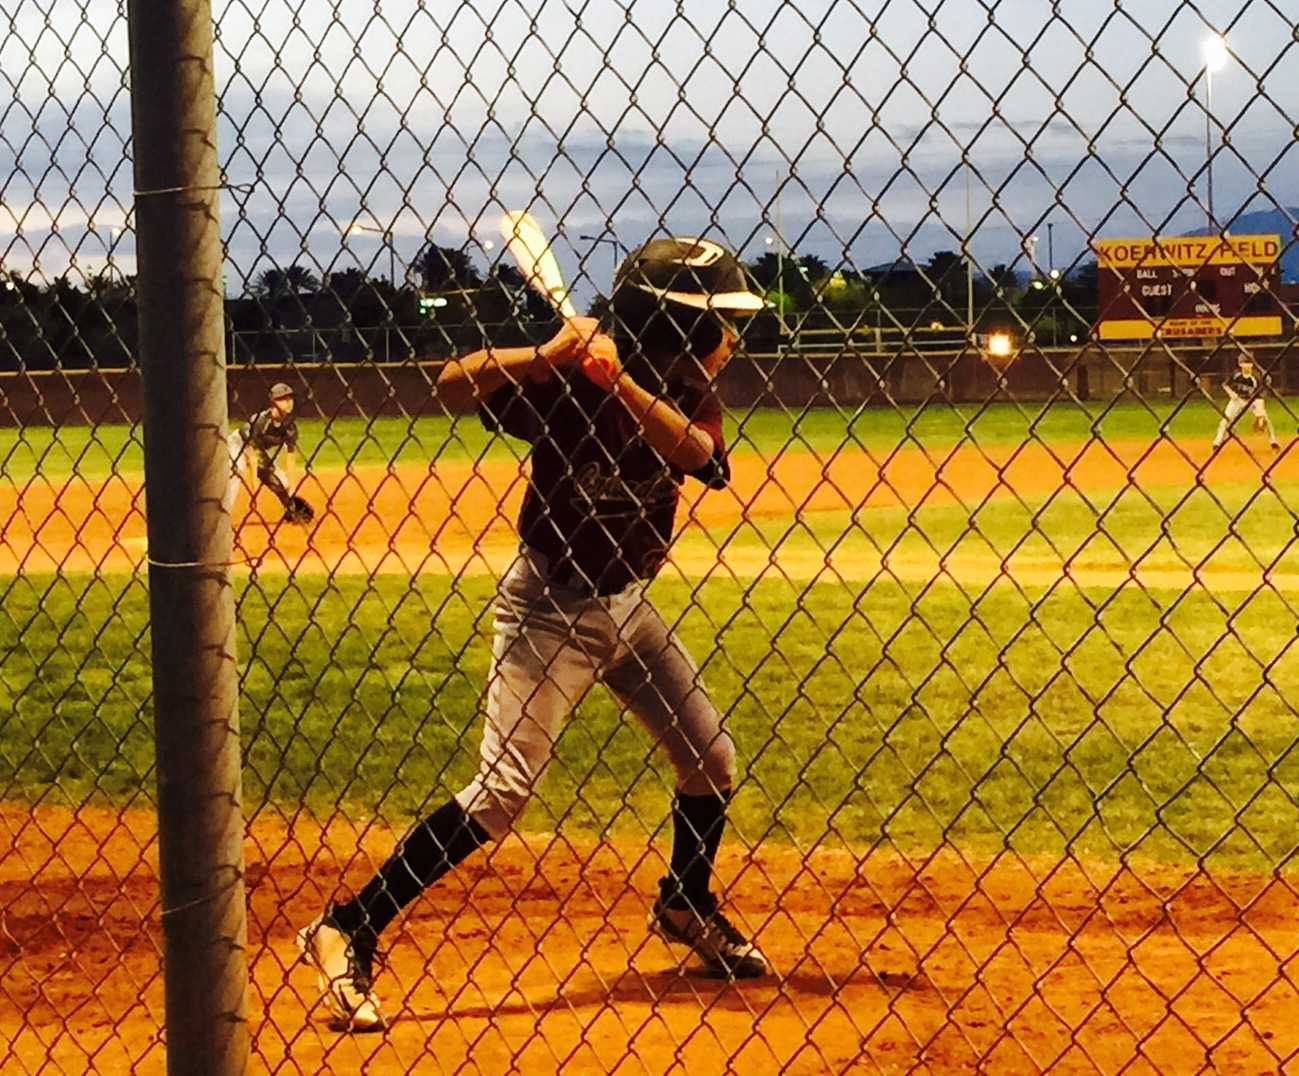 The middle school B team played Adelson for their first game and won 8-7. The two middle school baseball teams work hard during games and practices and will hopefully end up in first place at the end of the season.